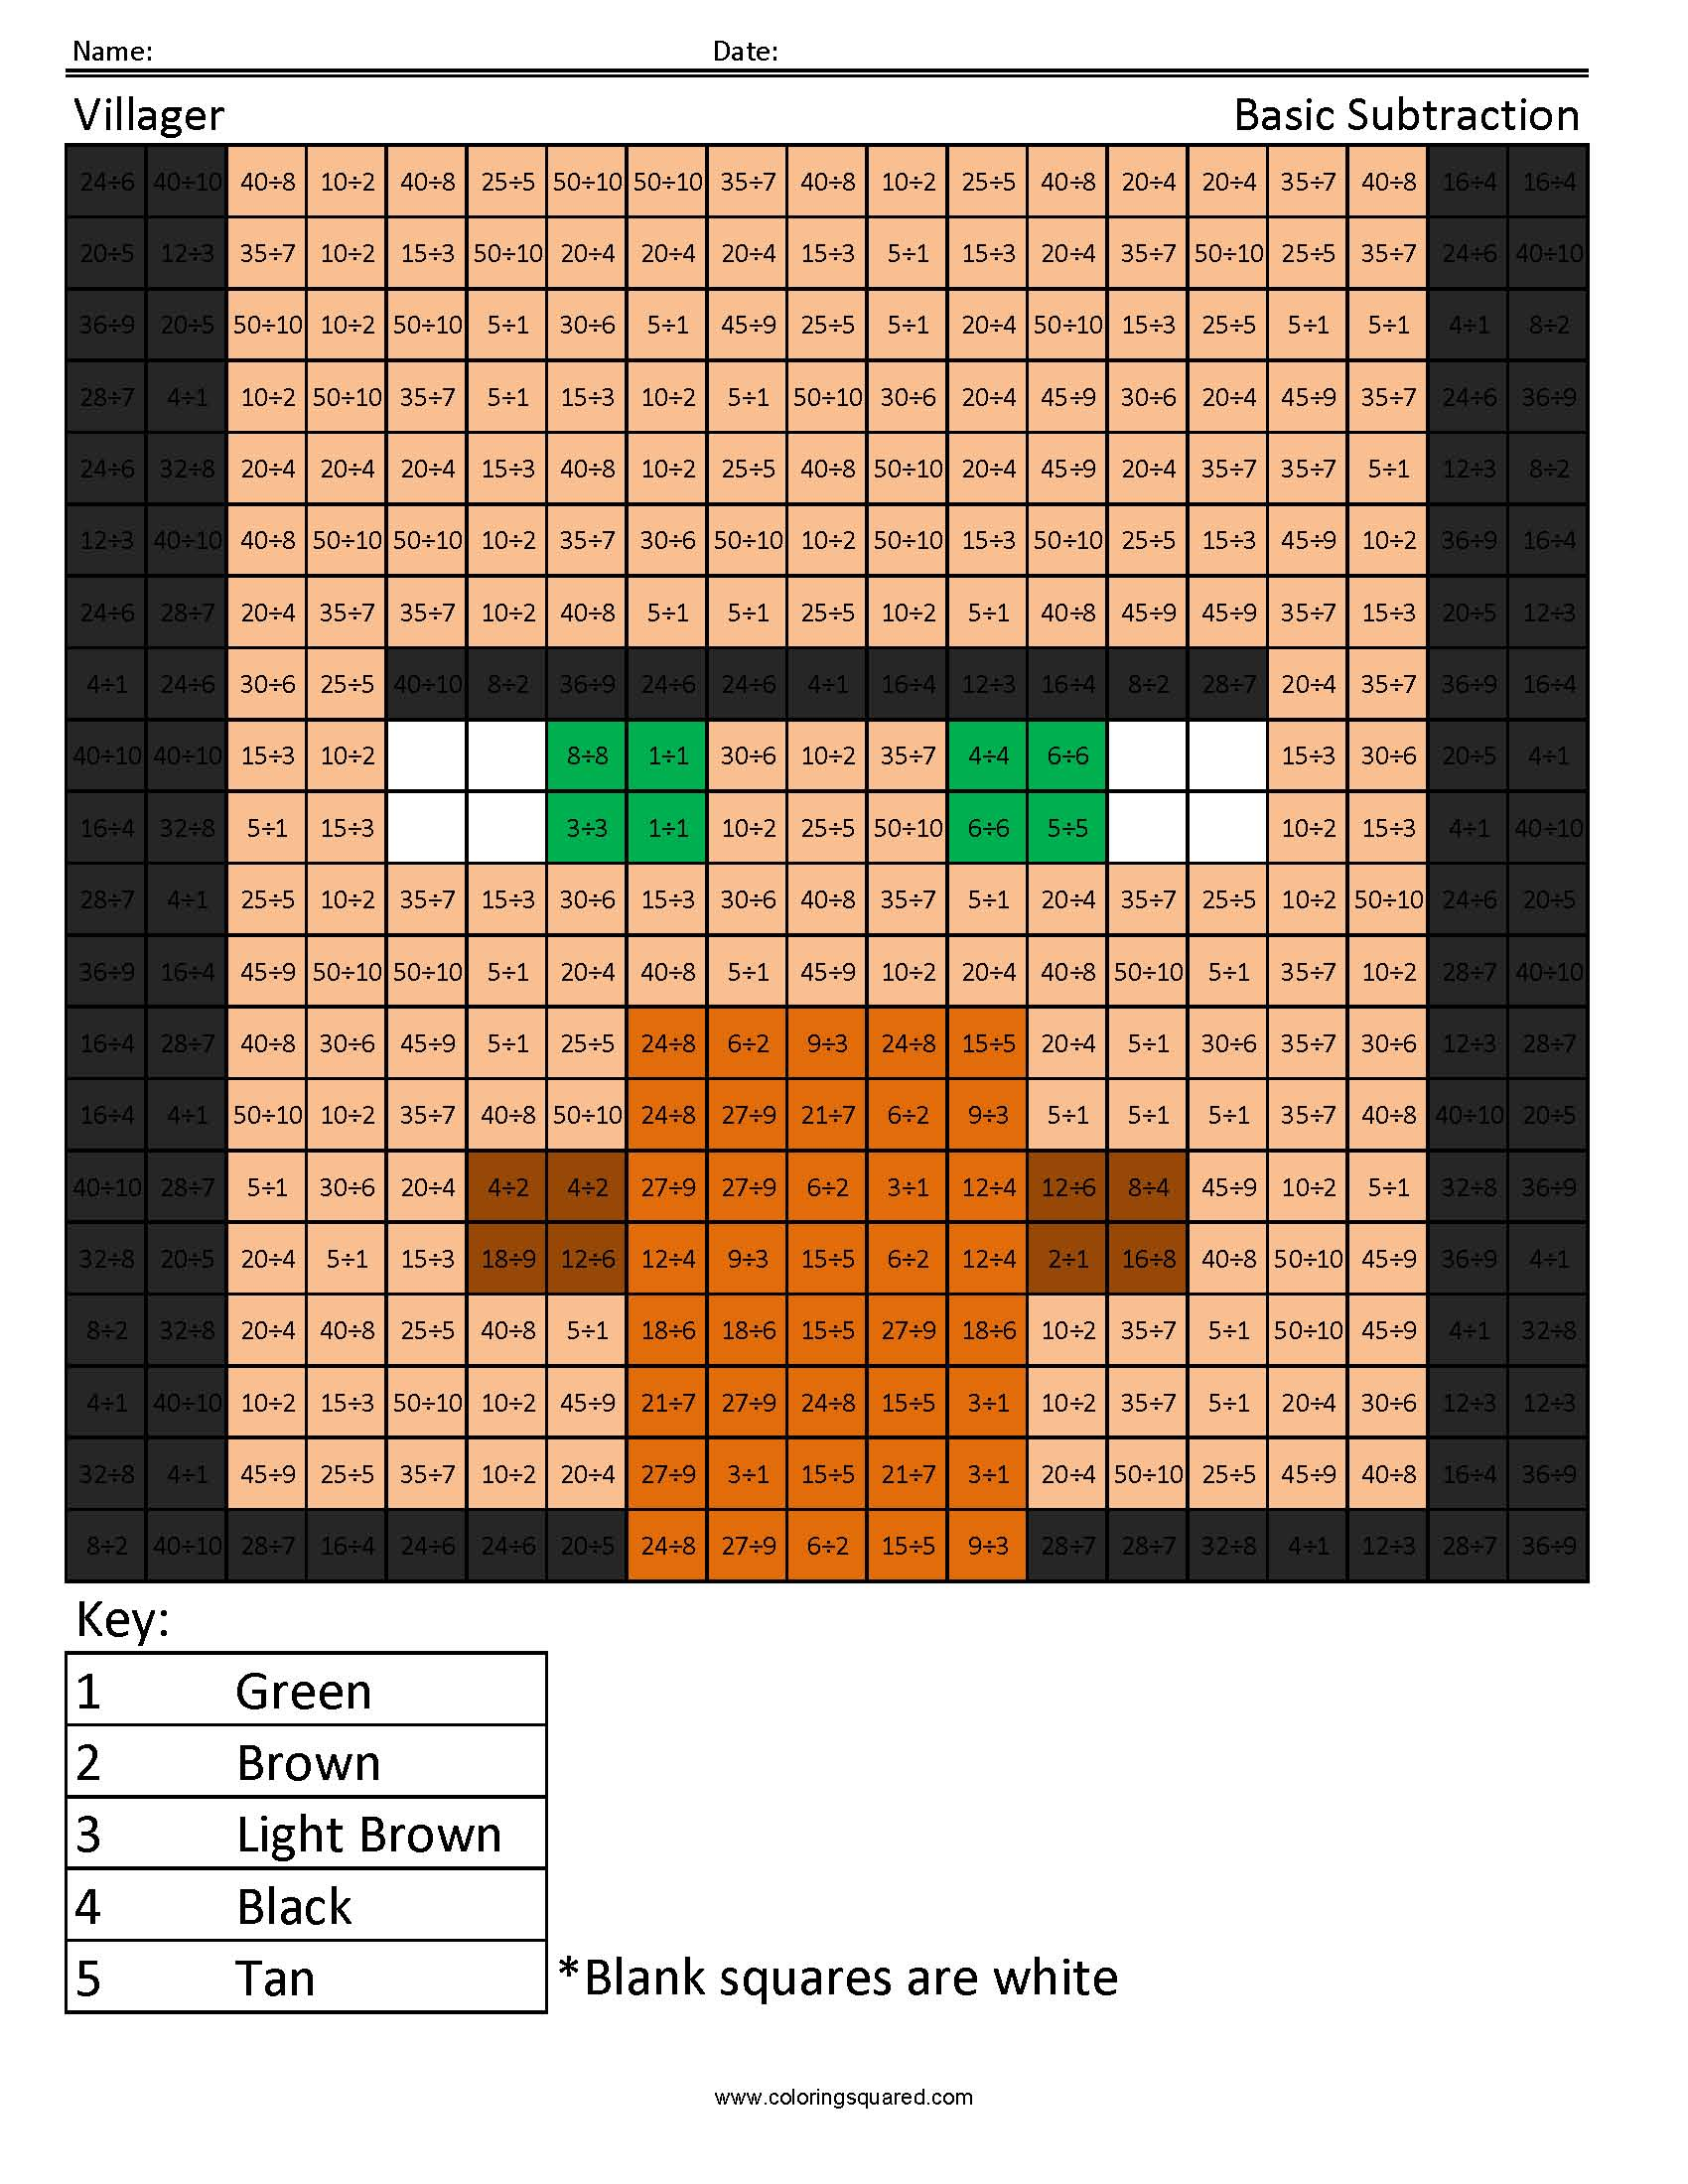 Villager Basic Division Coloring Squared